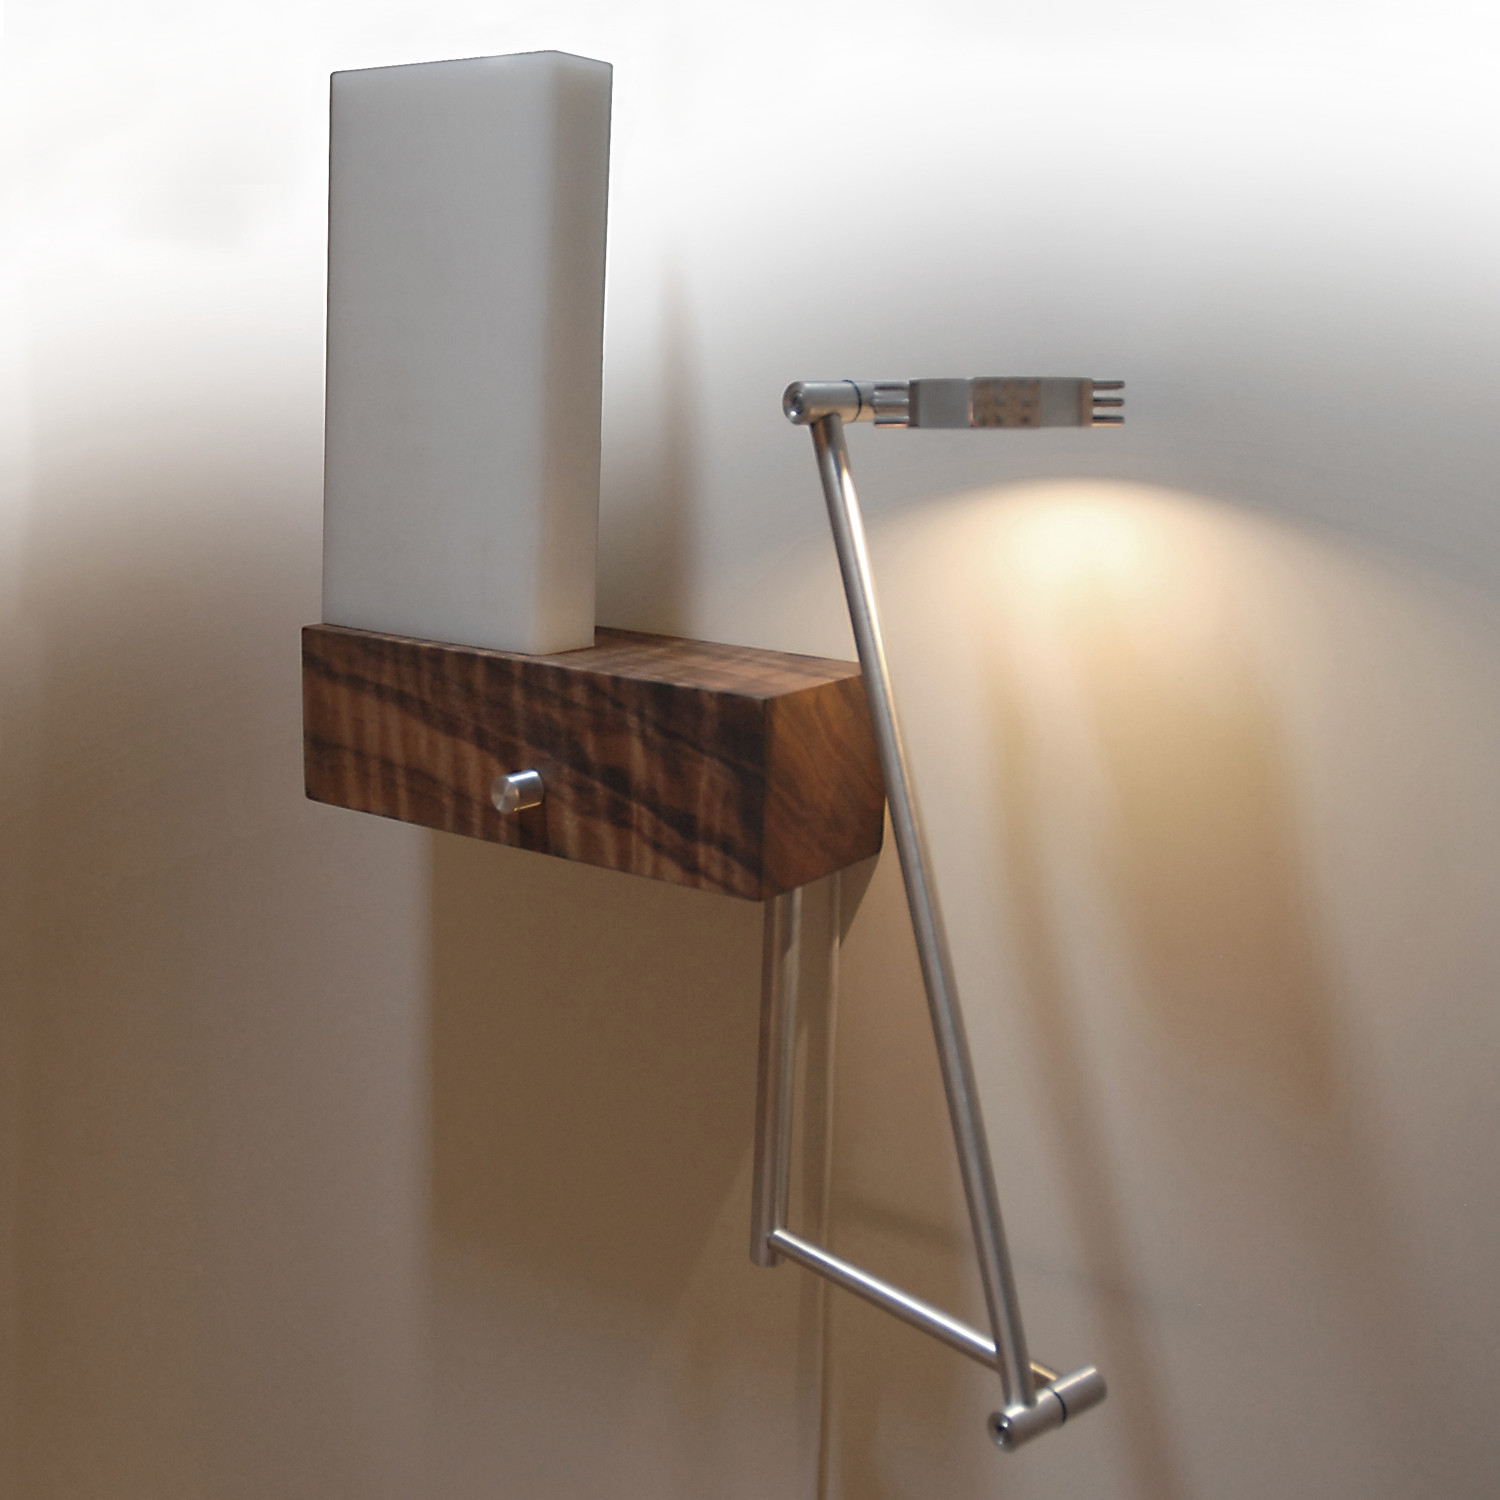 Image of: Hardwired Wall Sconce Design